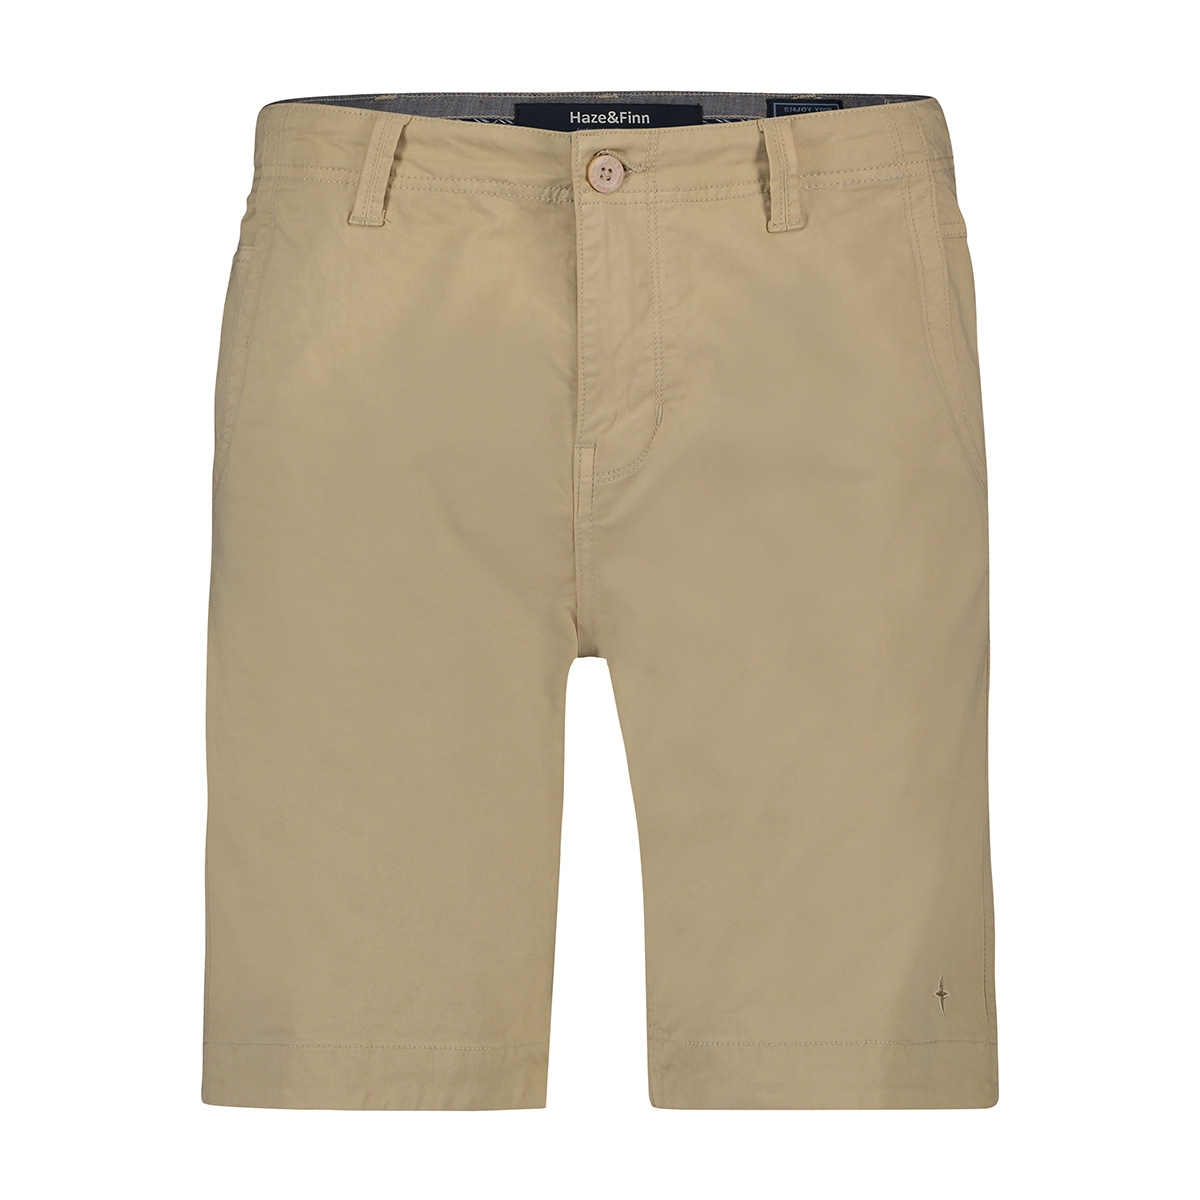 short casual mc13 0512 haze & finn korte broek sand